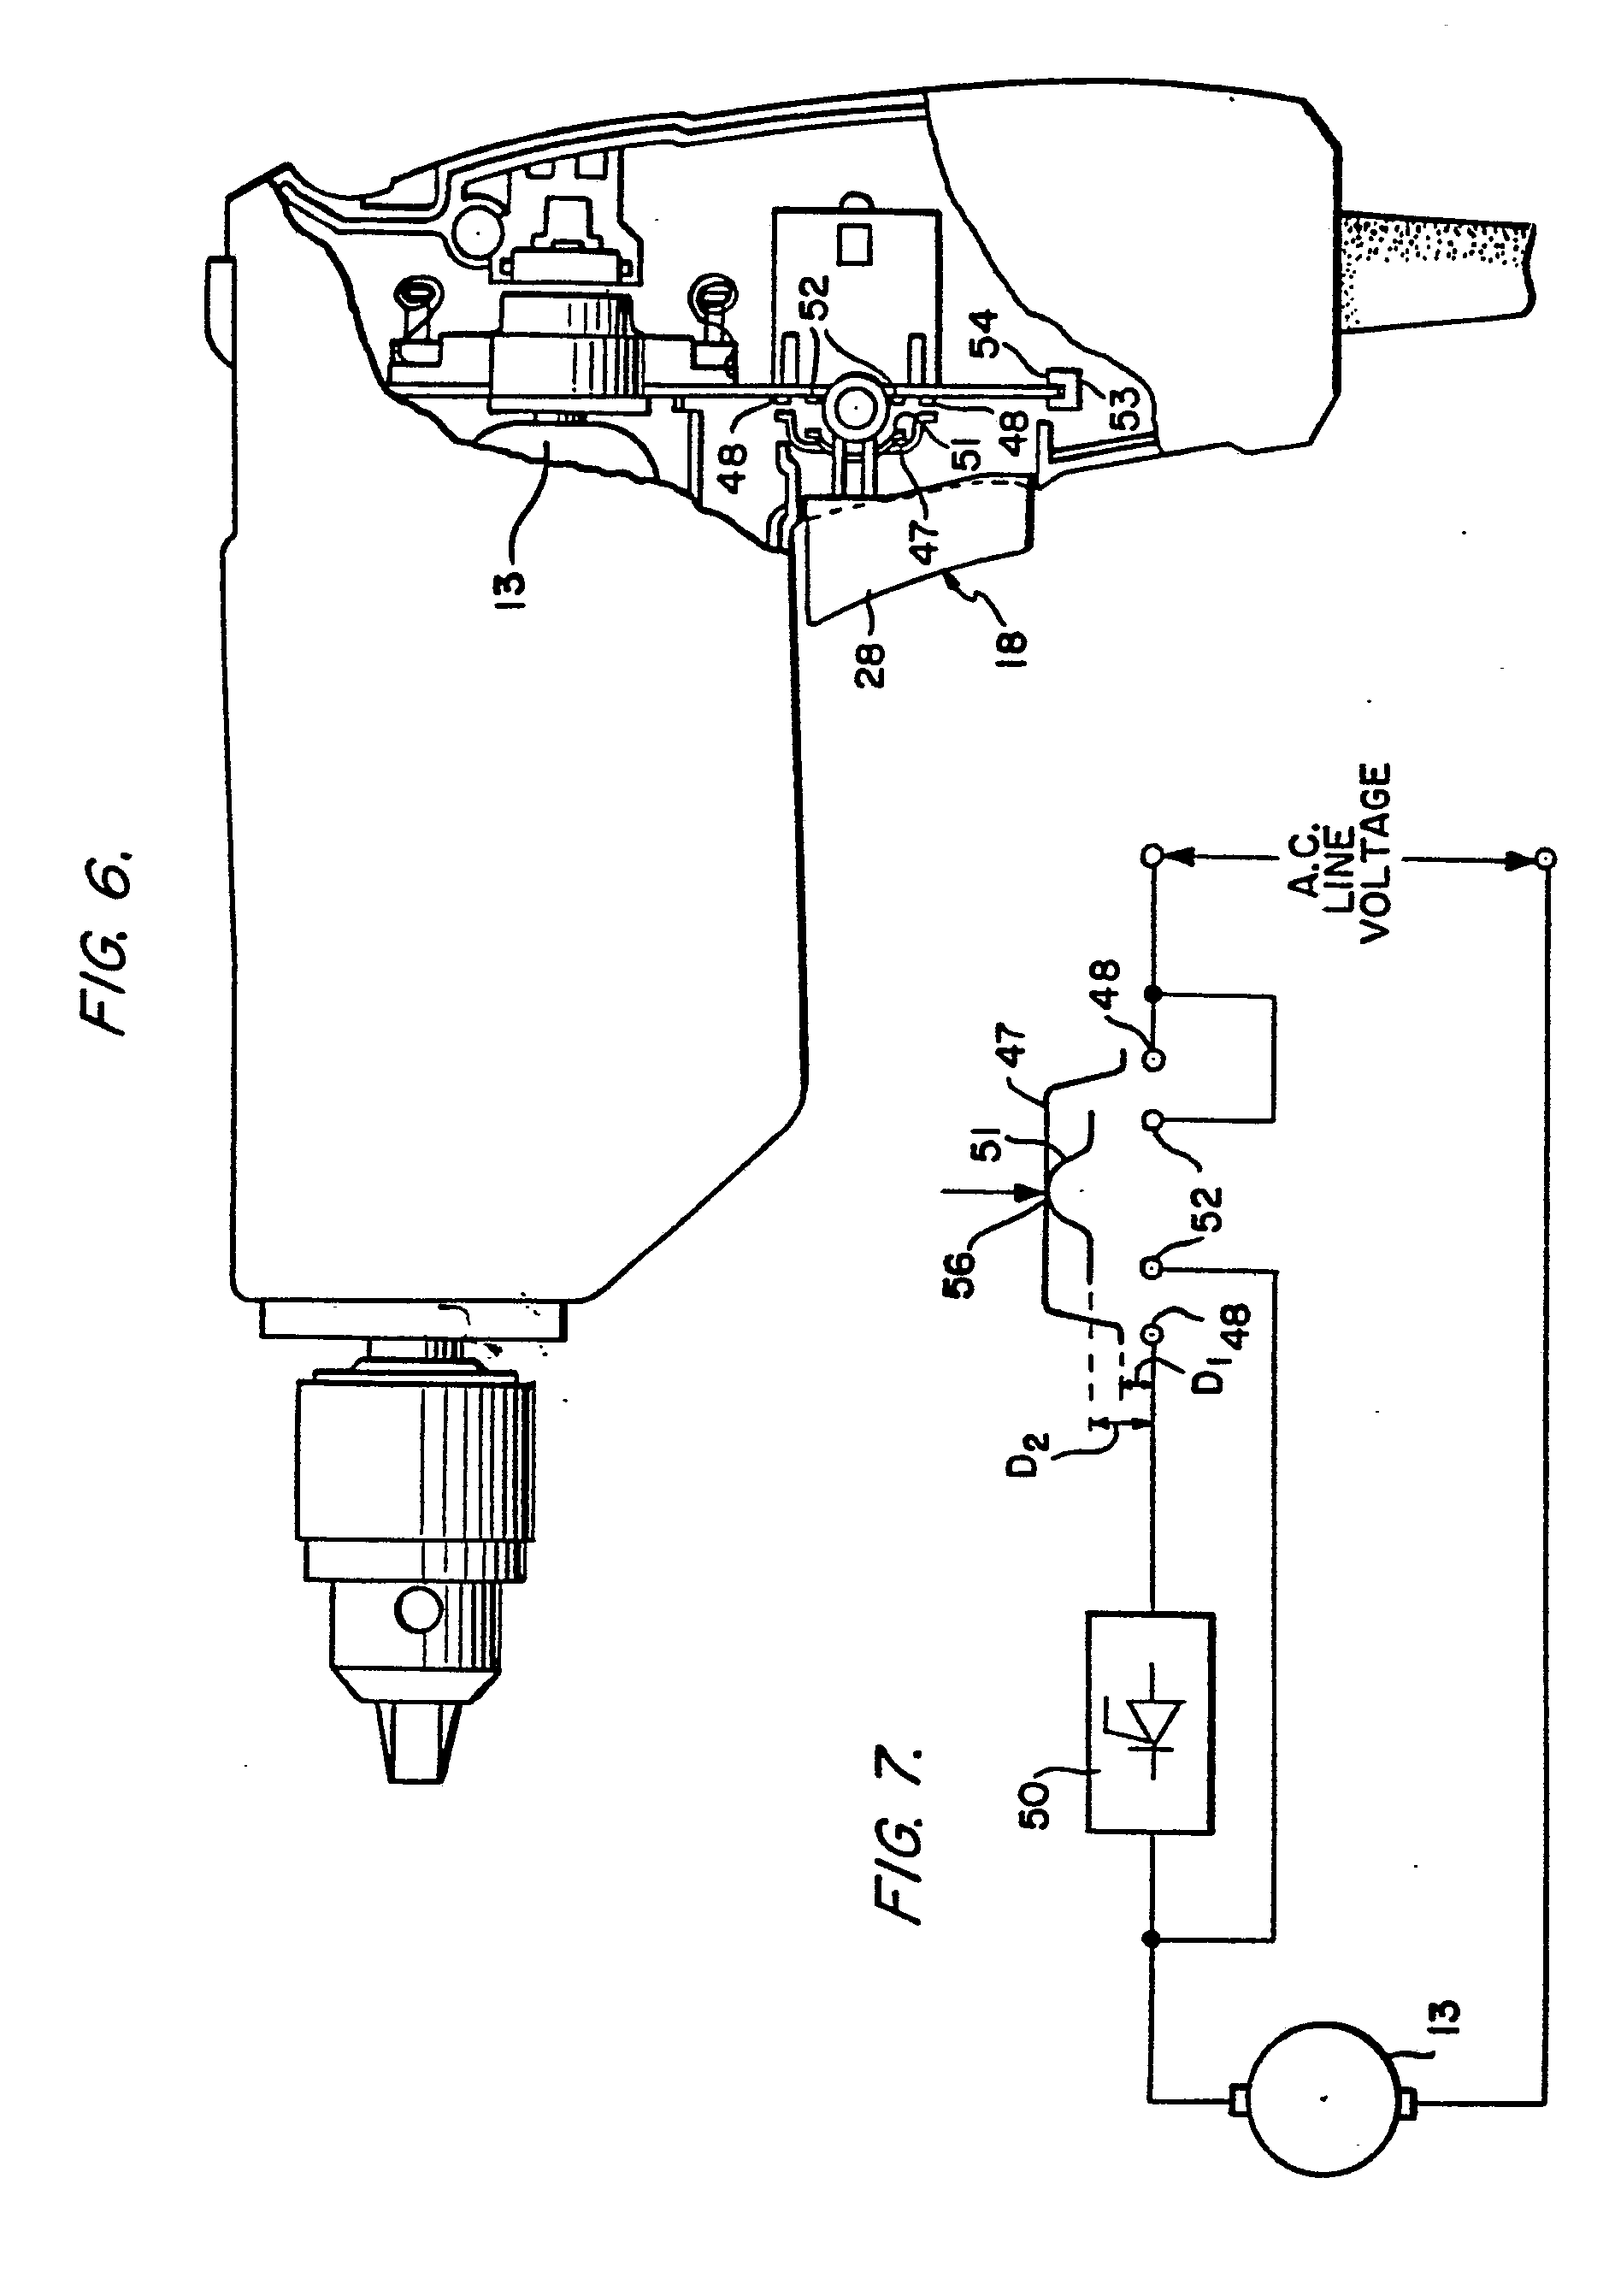 Patent EP0025938B1     Trigger       switch    and printed circuit